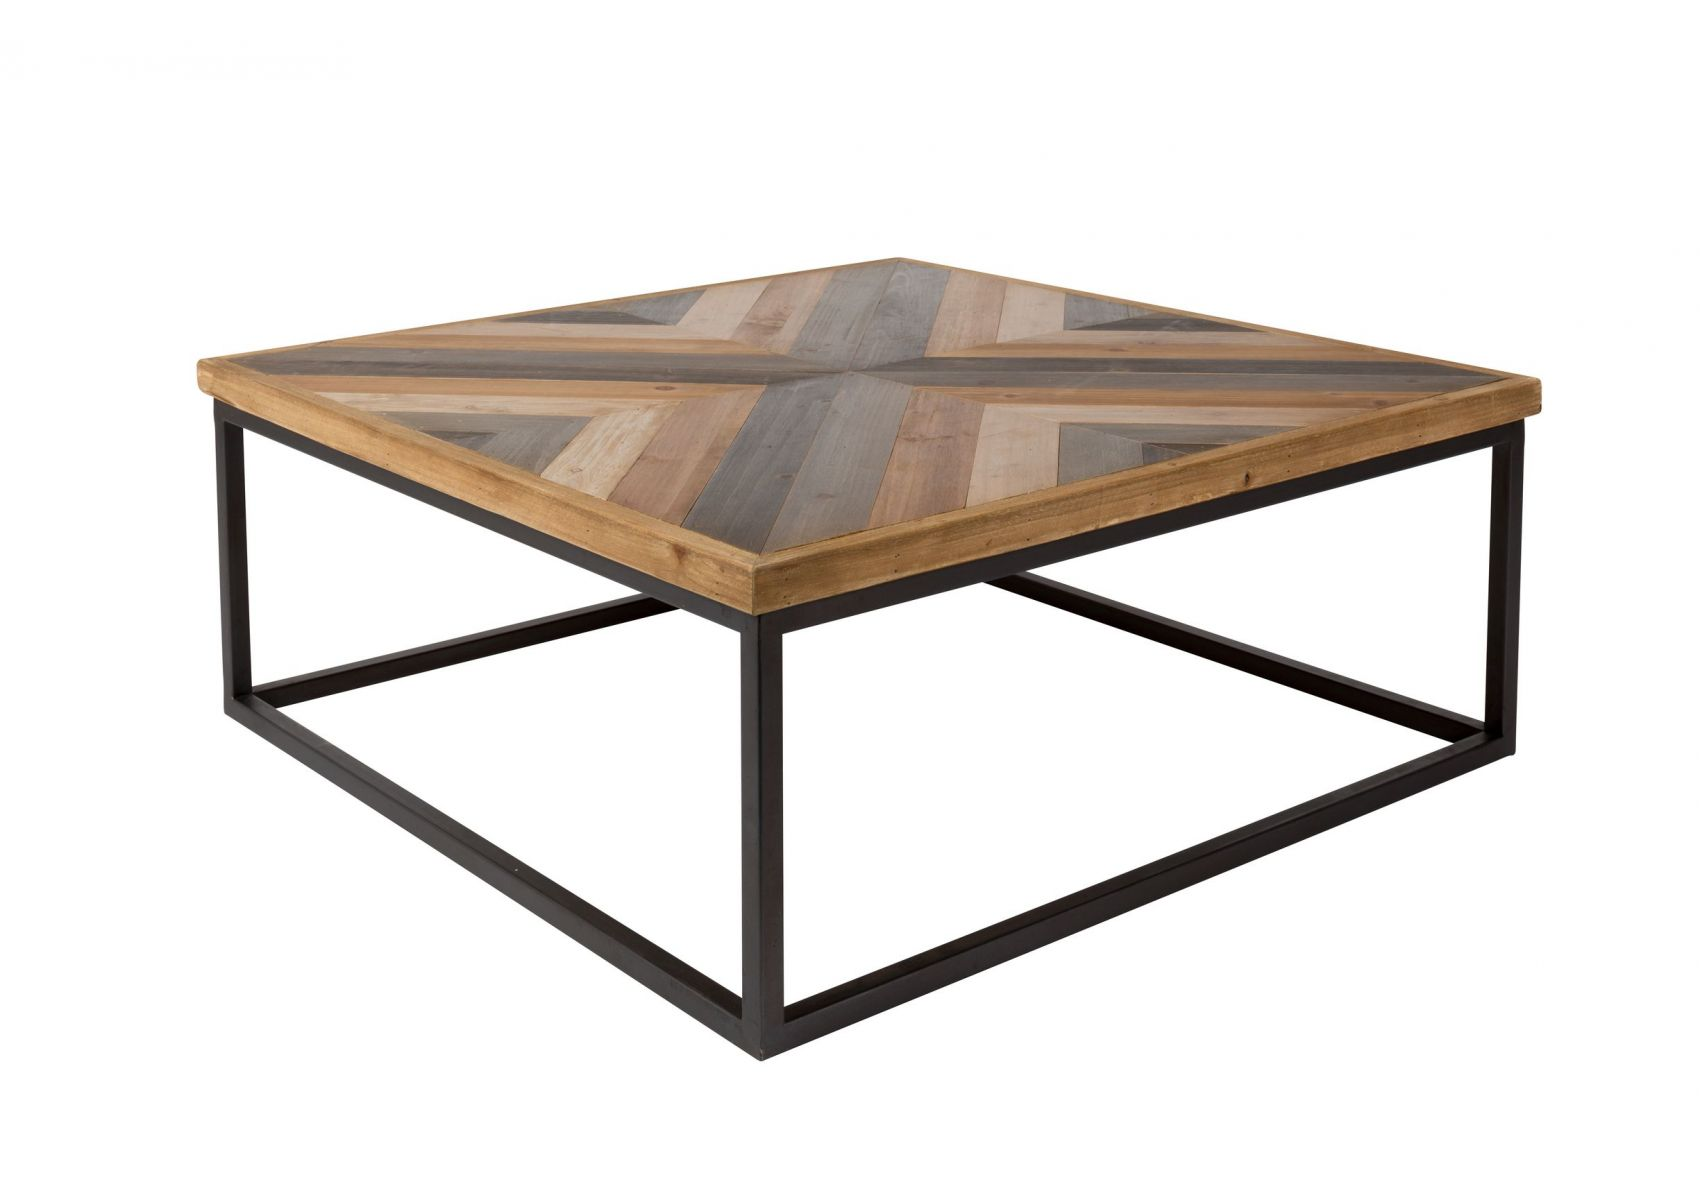 Table Basse Carrée Design Table Basse Carrée Bois Et Metal Style Industriel Joy